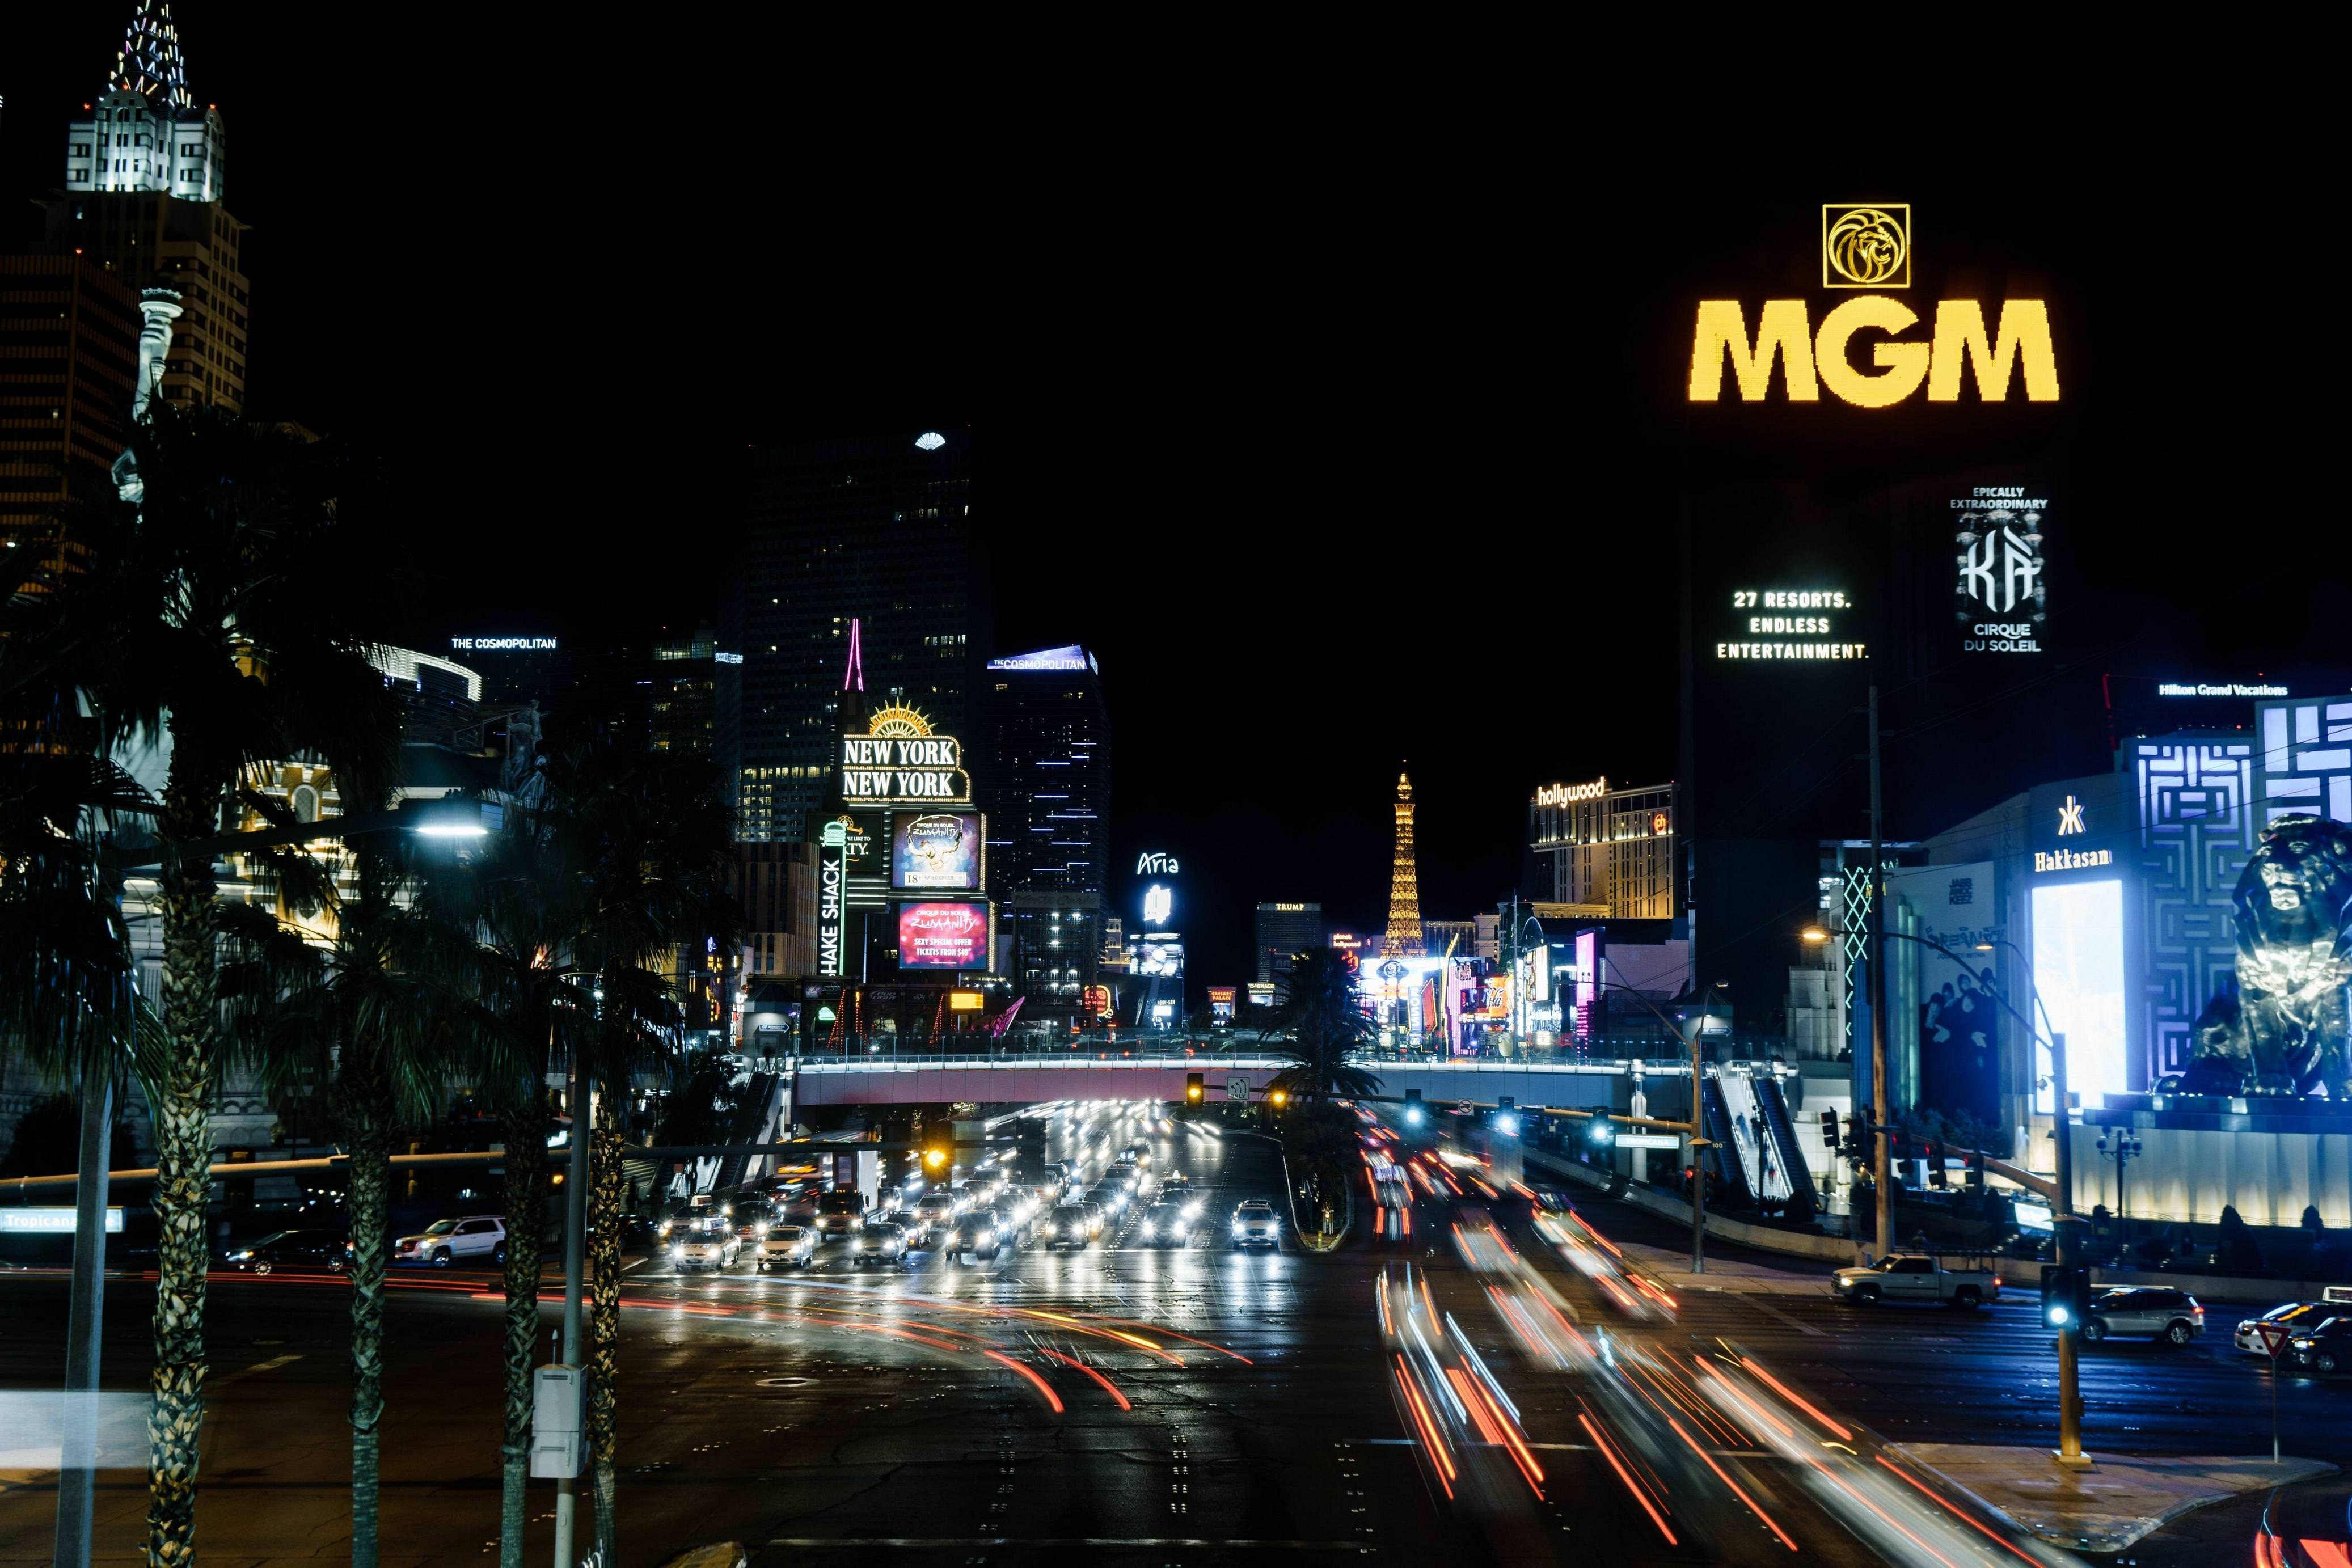 Vegas 4k Wallpapers For Your Desktop Or Mobile Screen Free And